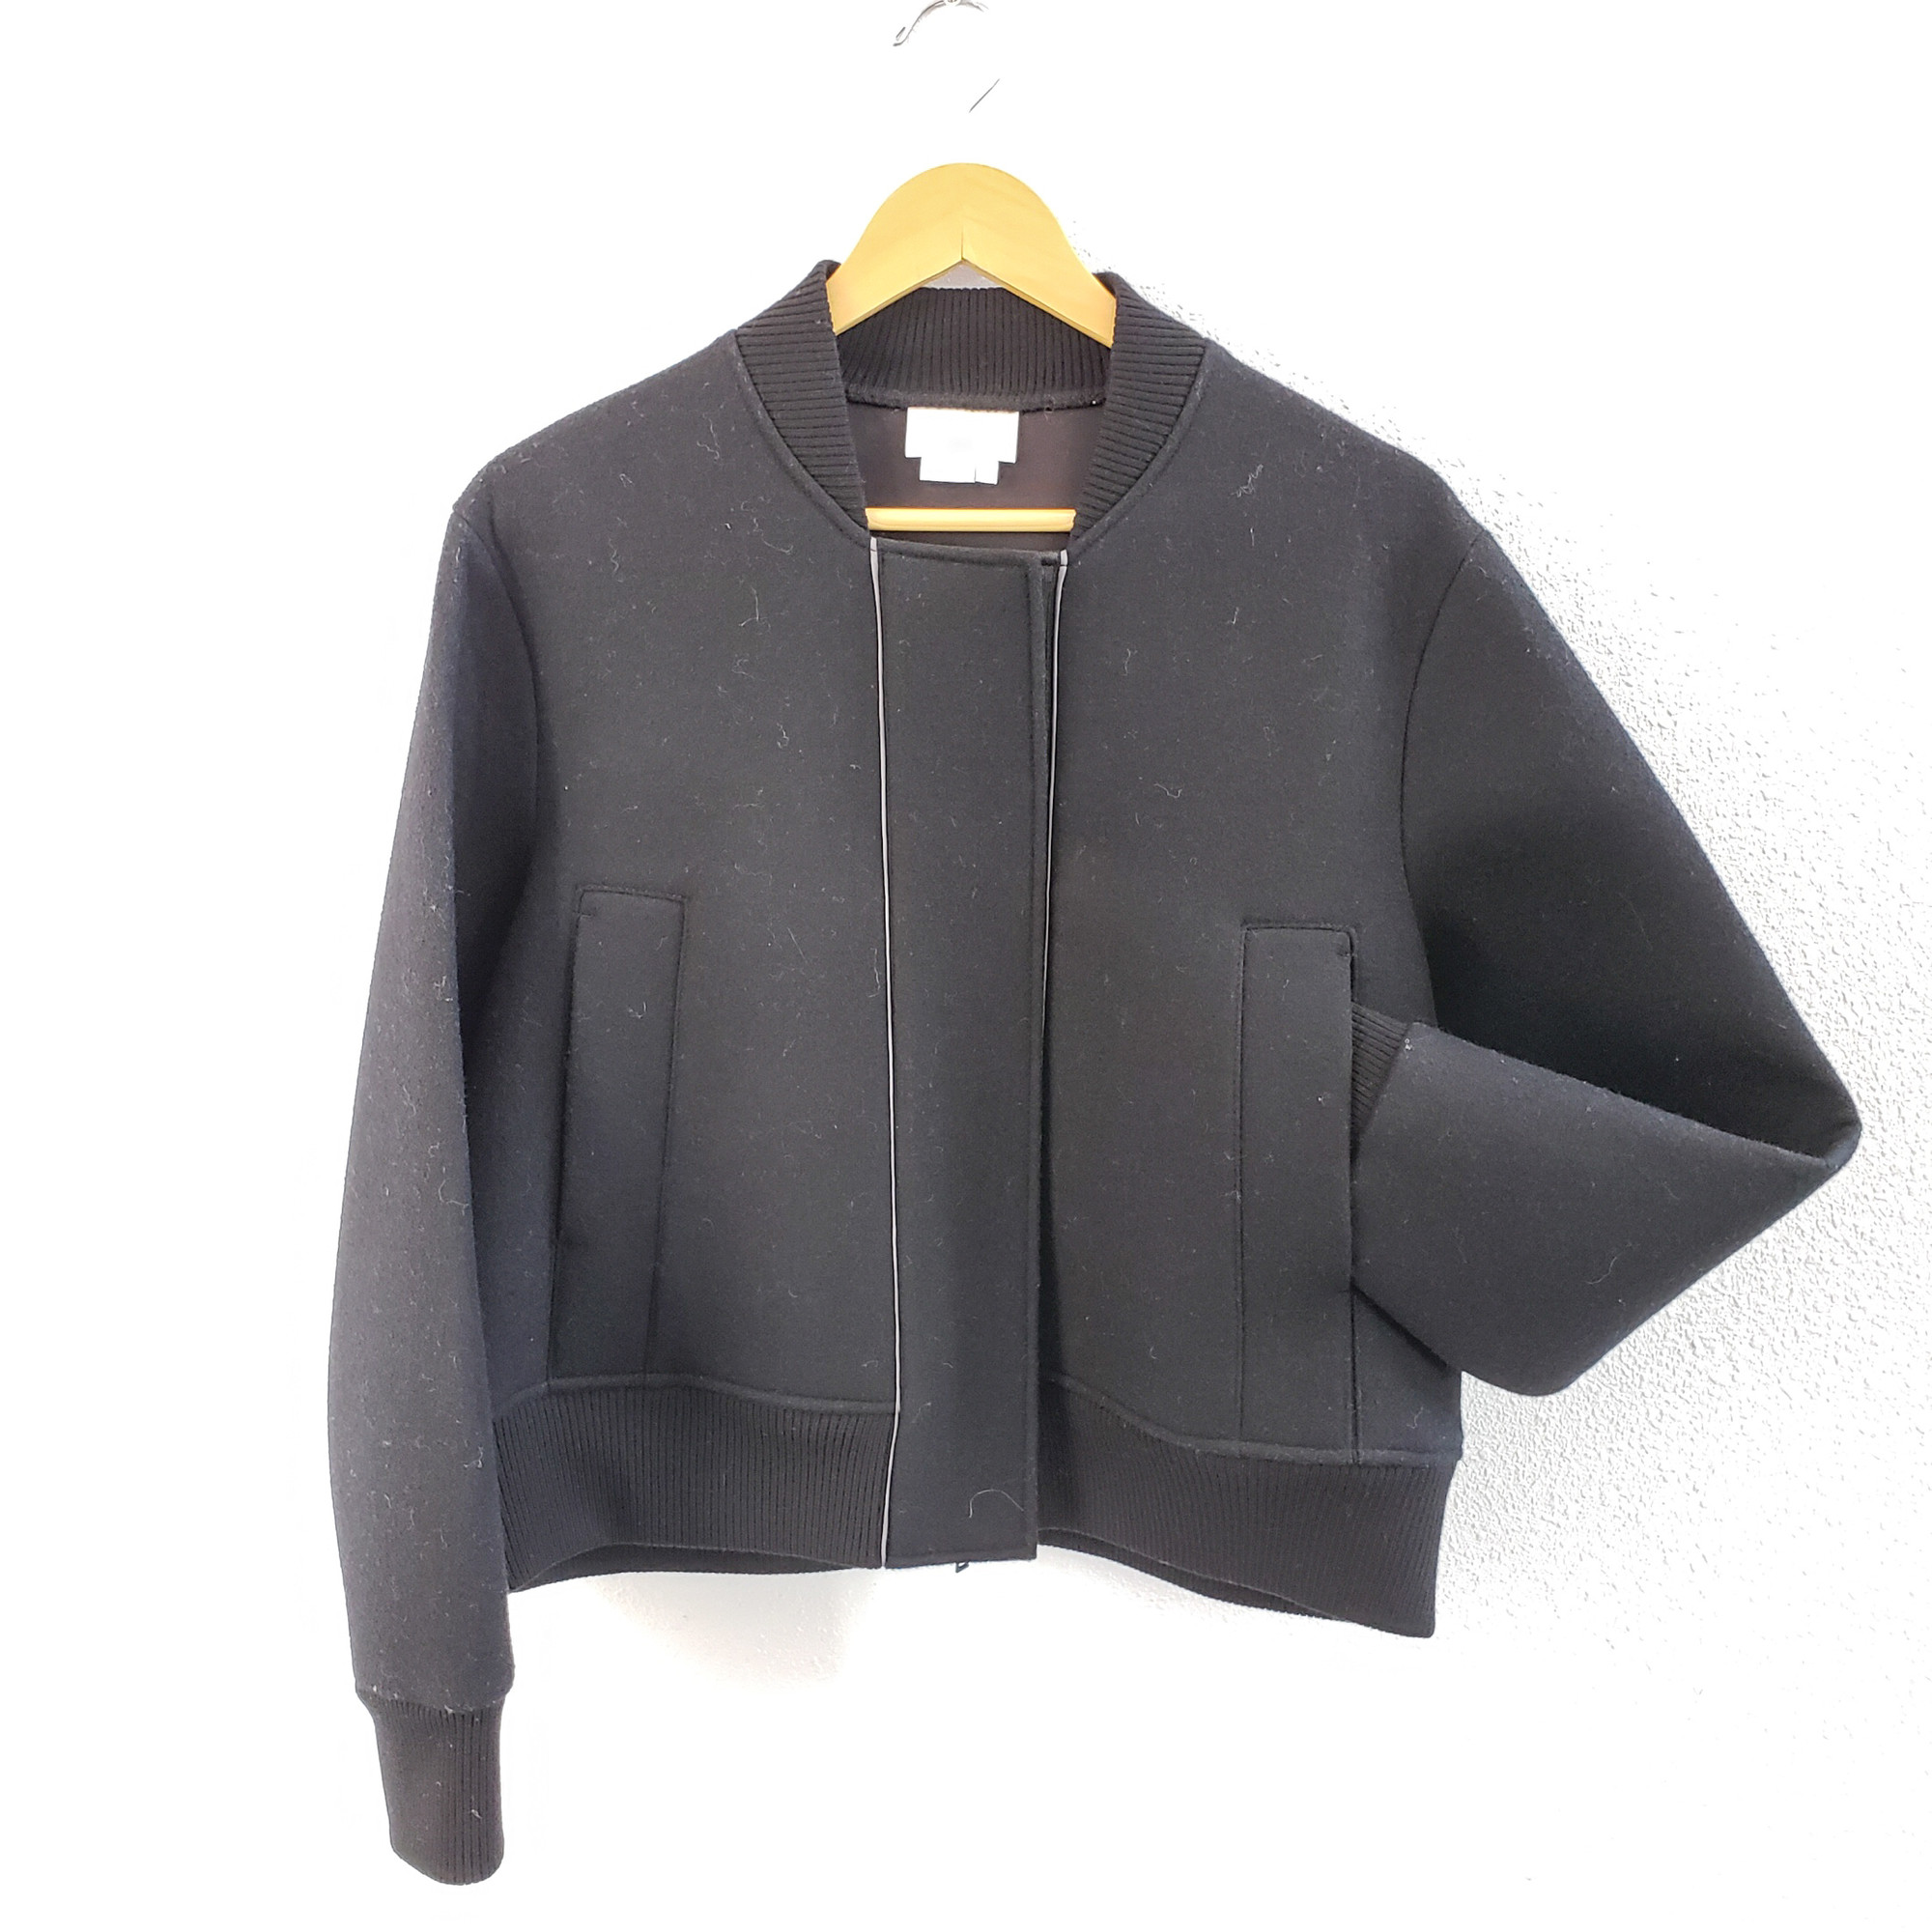 DKNY Pure<br /> Black Jacket<br /> Size Large<br /> 60% Wool 20% Viscose 20% 20% Polyester<br /> Zip and Snap closures